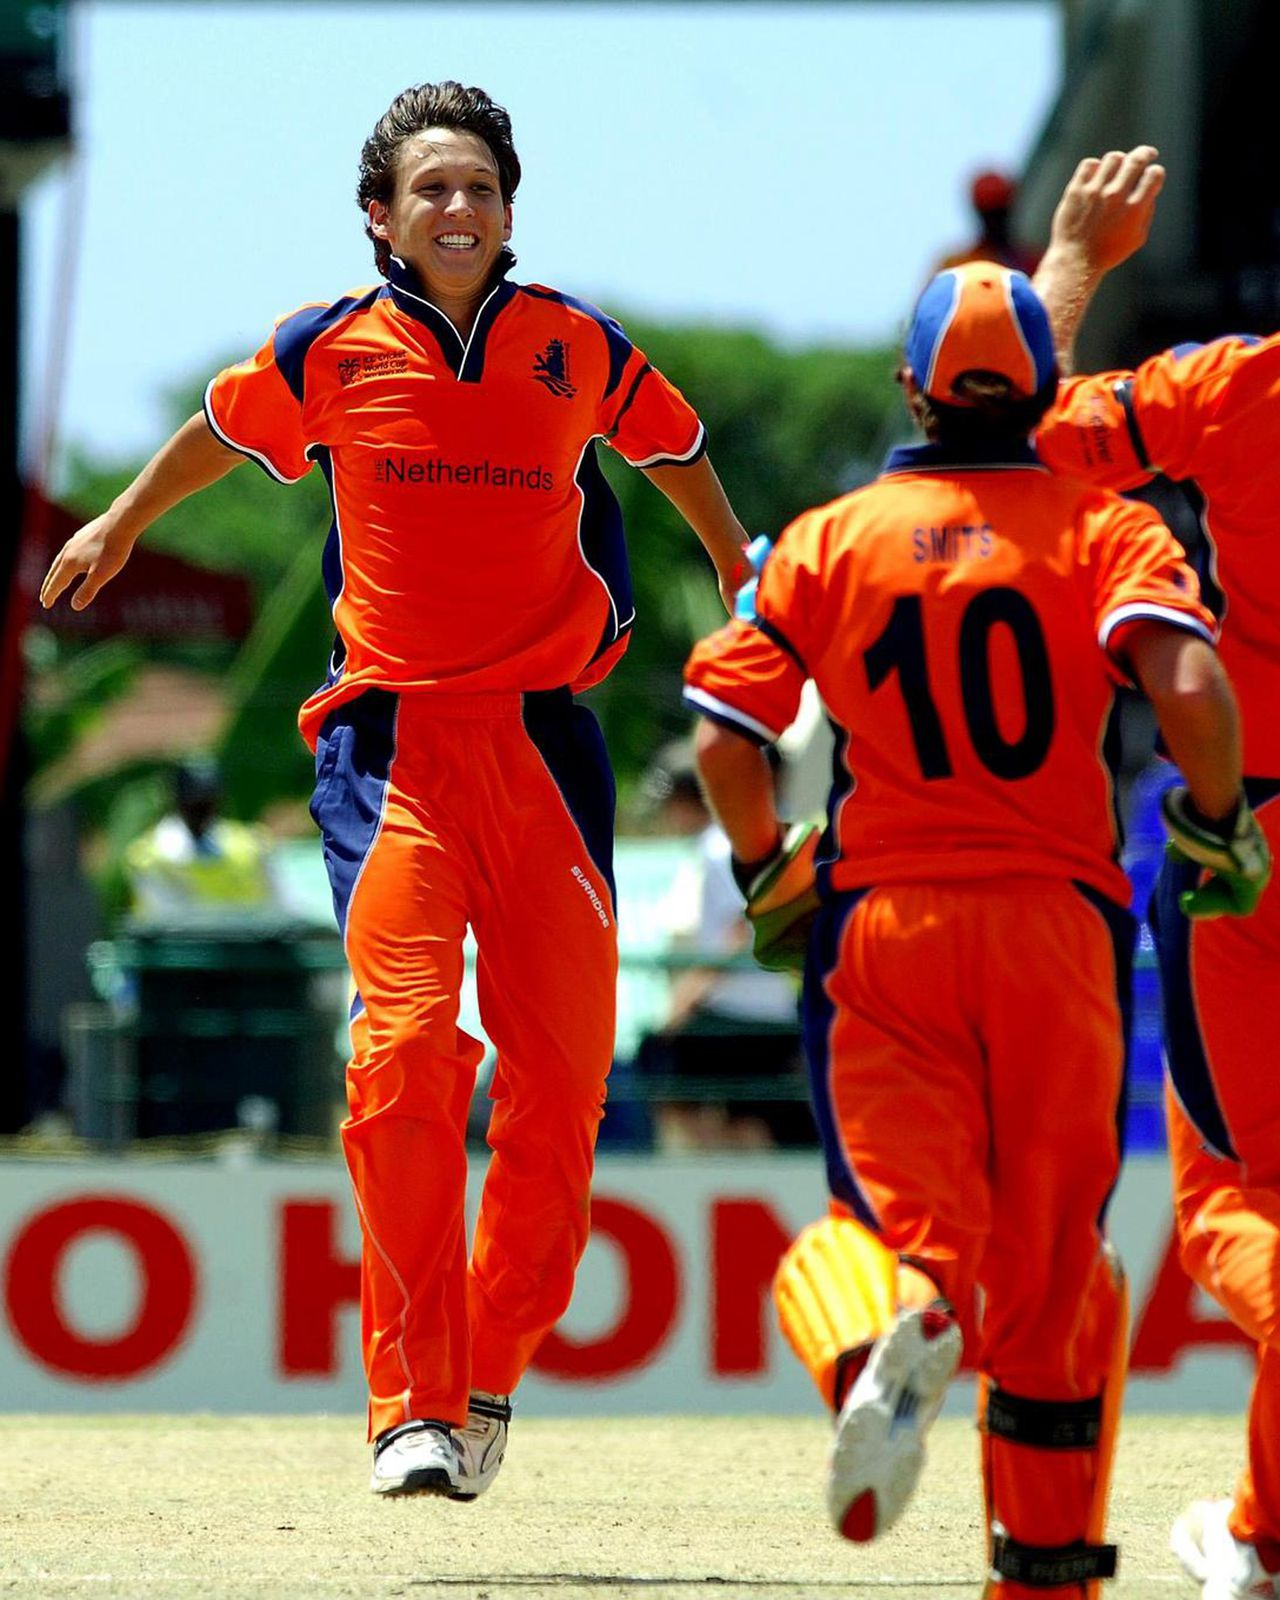 Netherlands' Mark Jonkman celebrates the dismissal of Scotland's Colin Watson, unseen, during the Cricket World Cup Group A match at Warner Park, Basseterre, St Kitts, Thursday March 22, 2007. (AP Photo/Rui Vieira, PA) ** UNITED KINGDOM OUT **